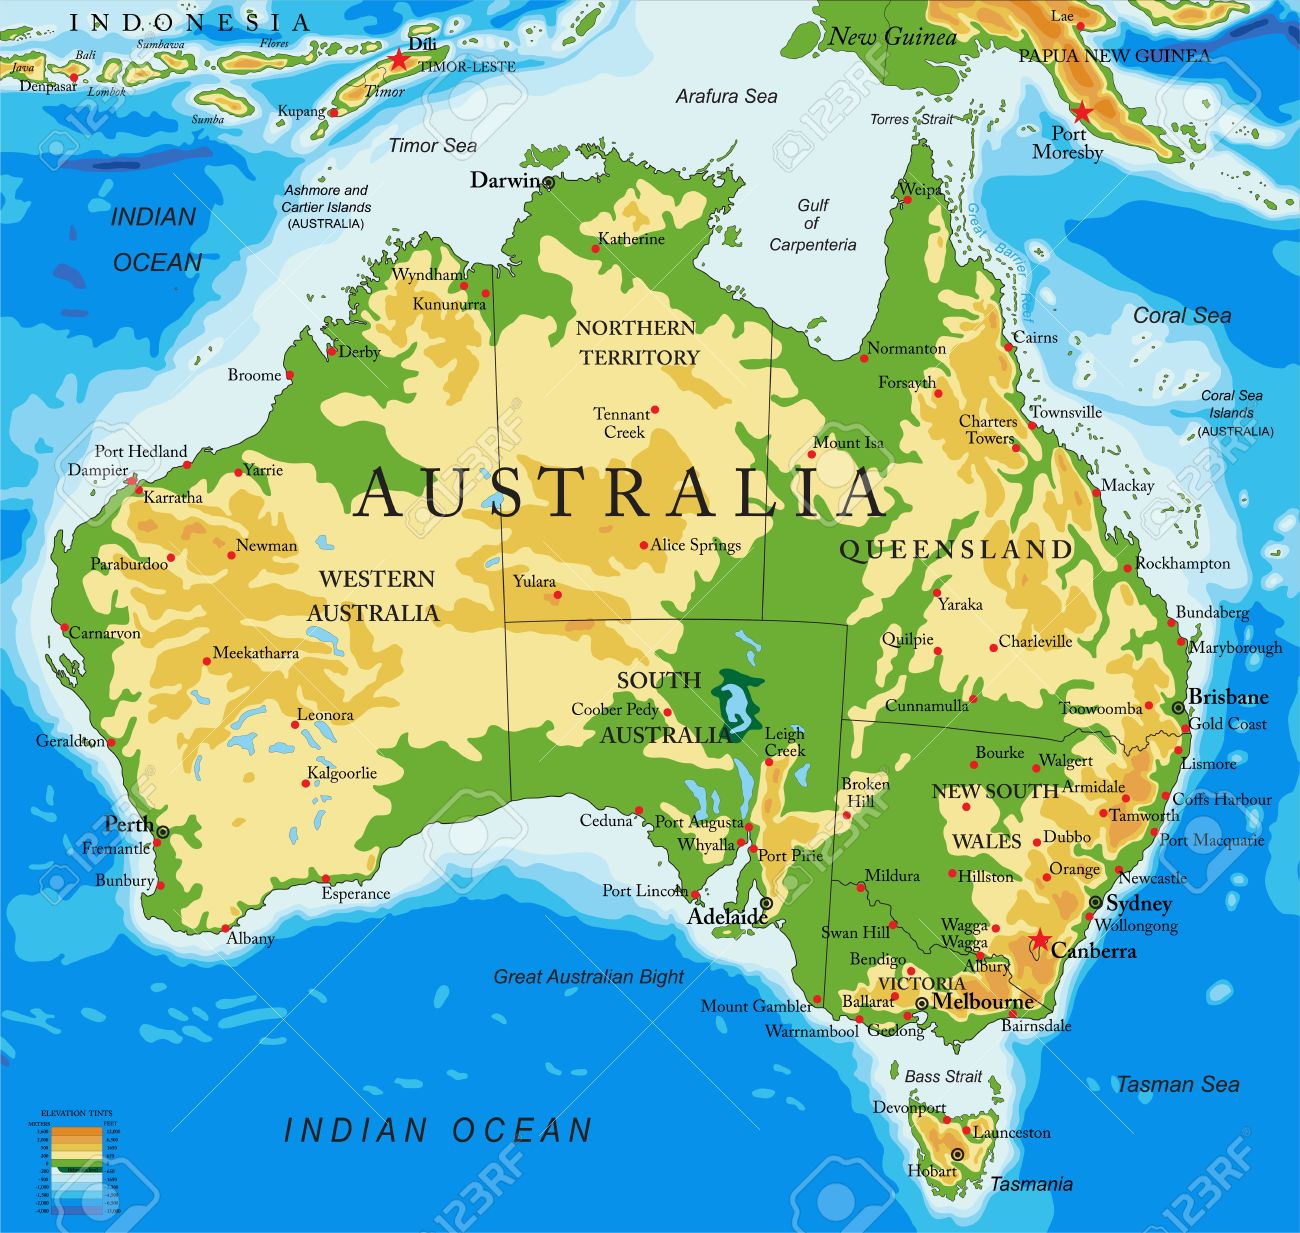 Map Of Australia Images.Australia Physical Map Royalty Free Cliparts Vectors And Stock